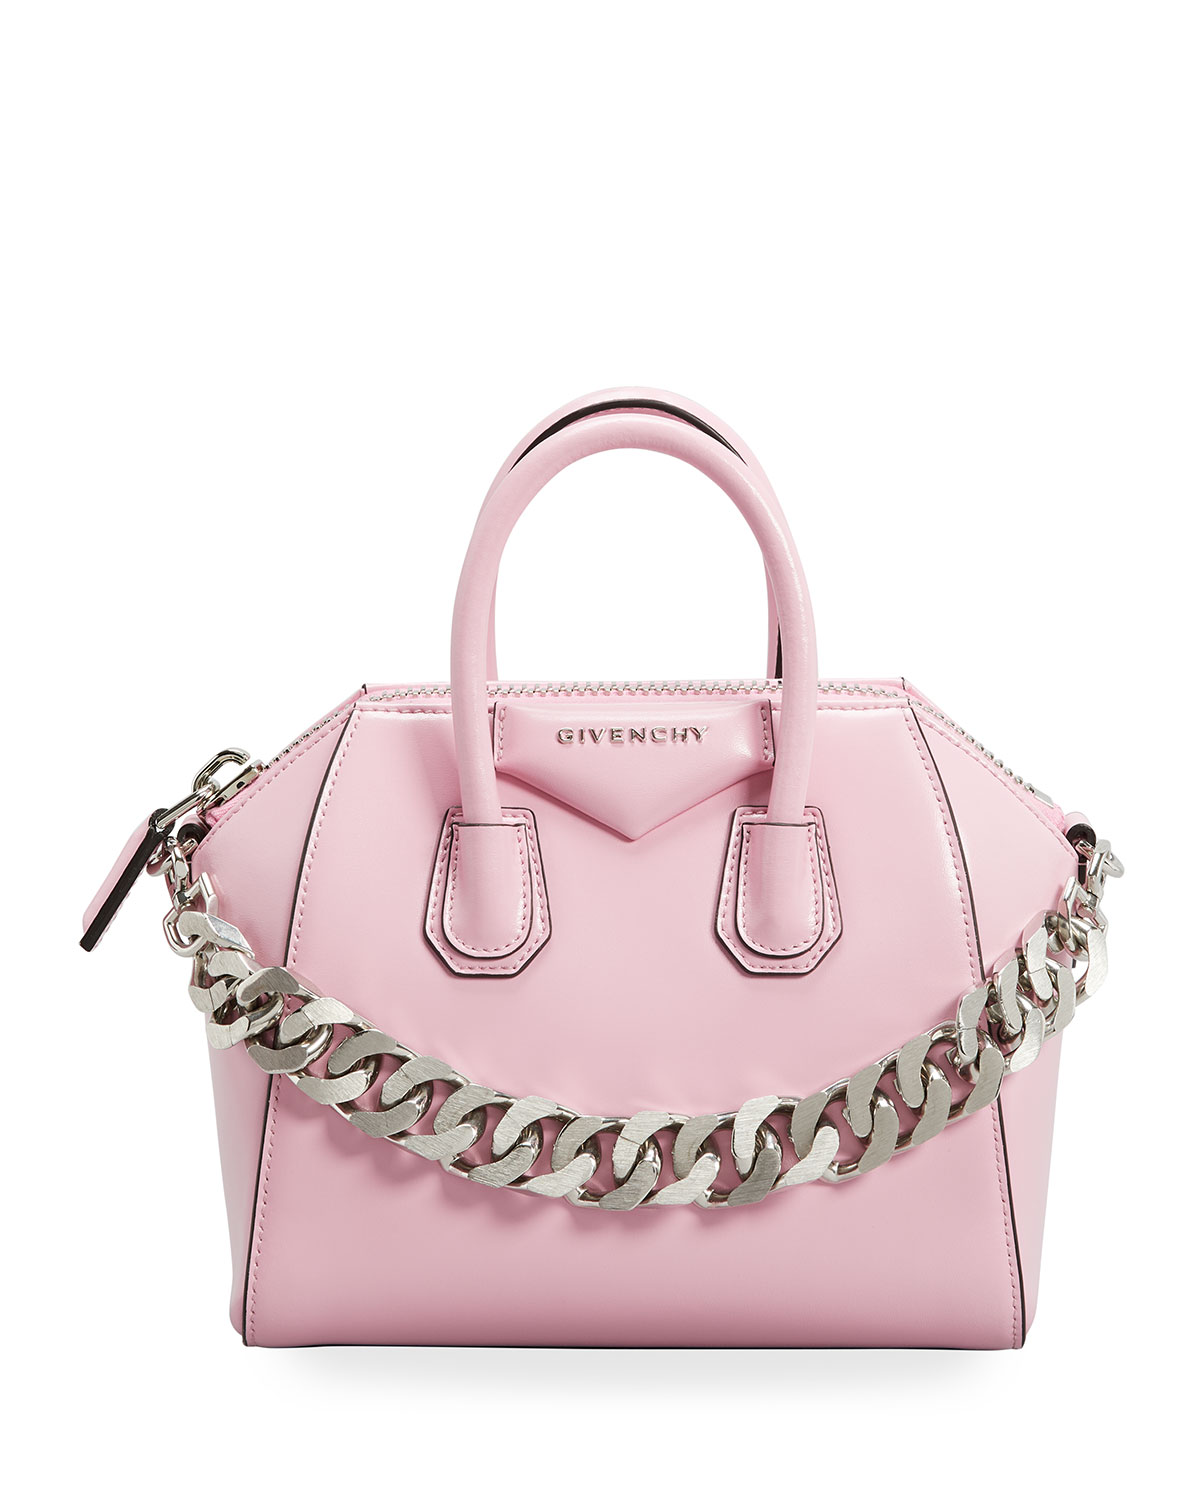 Givenchy Leathers MINI ANTIGONA BAG IN BOX LEATHER WITH CHAIN